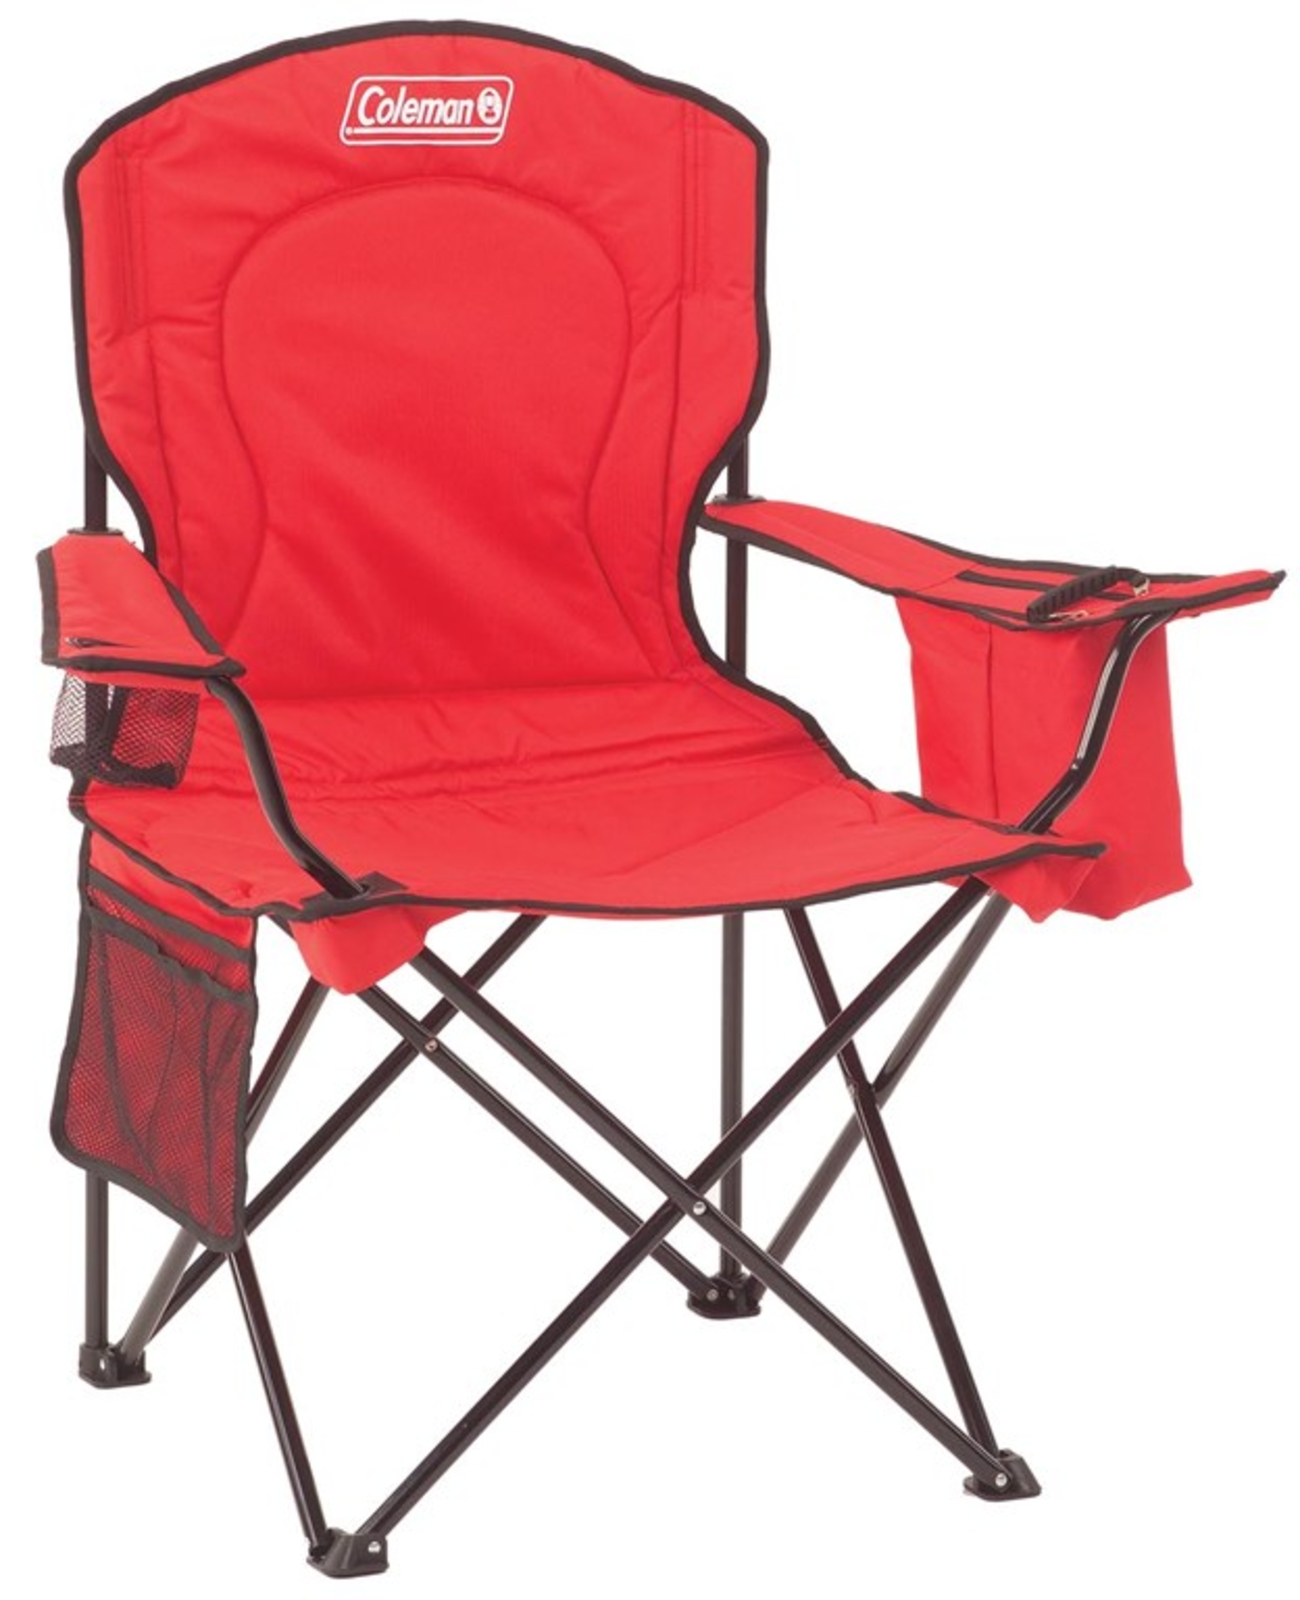 KingCamp Heavy Duty Folding Chair Padded Camping Chair with Mesh Cup Holder Ar